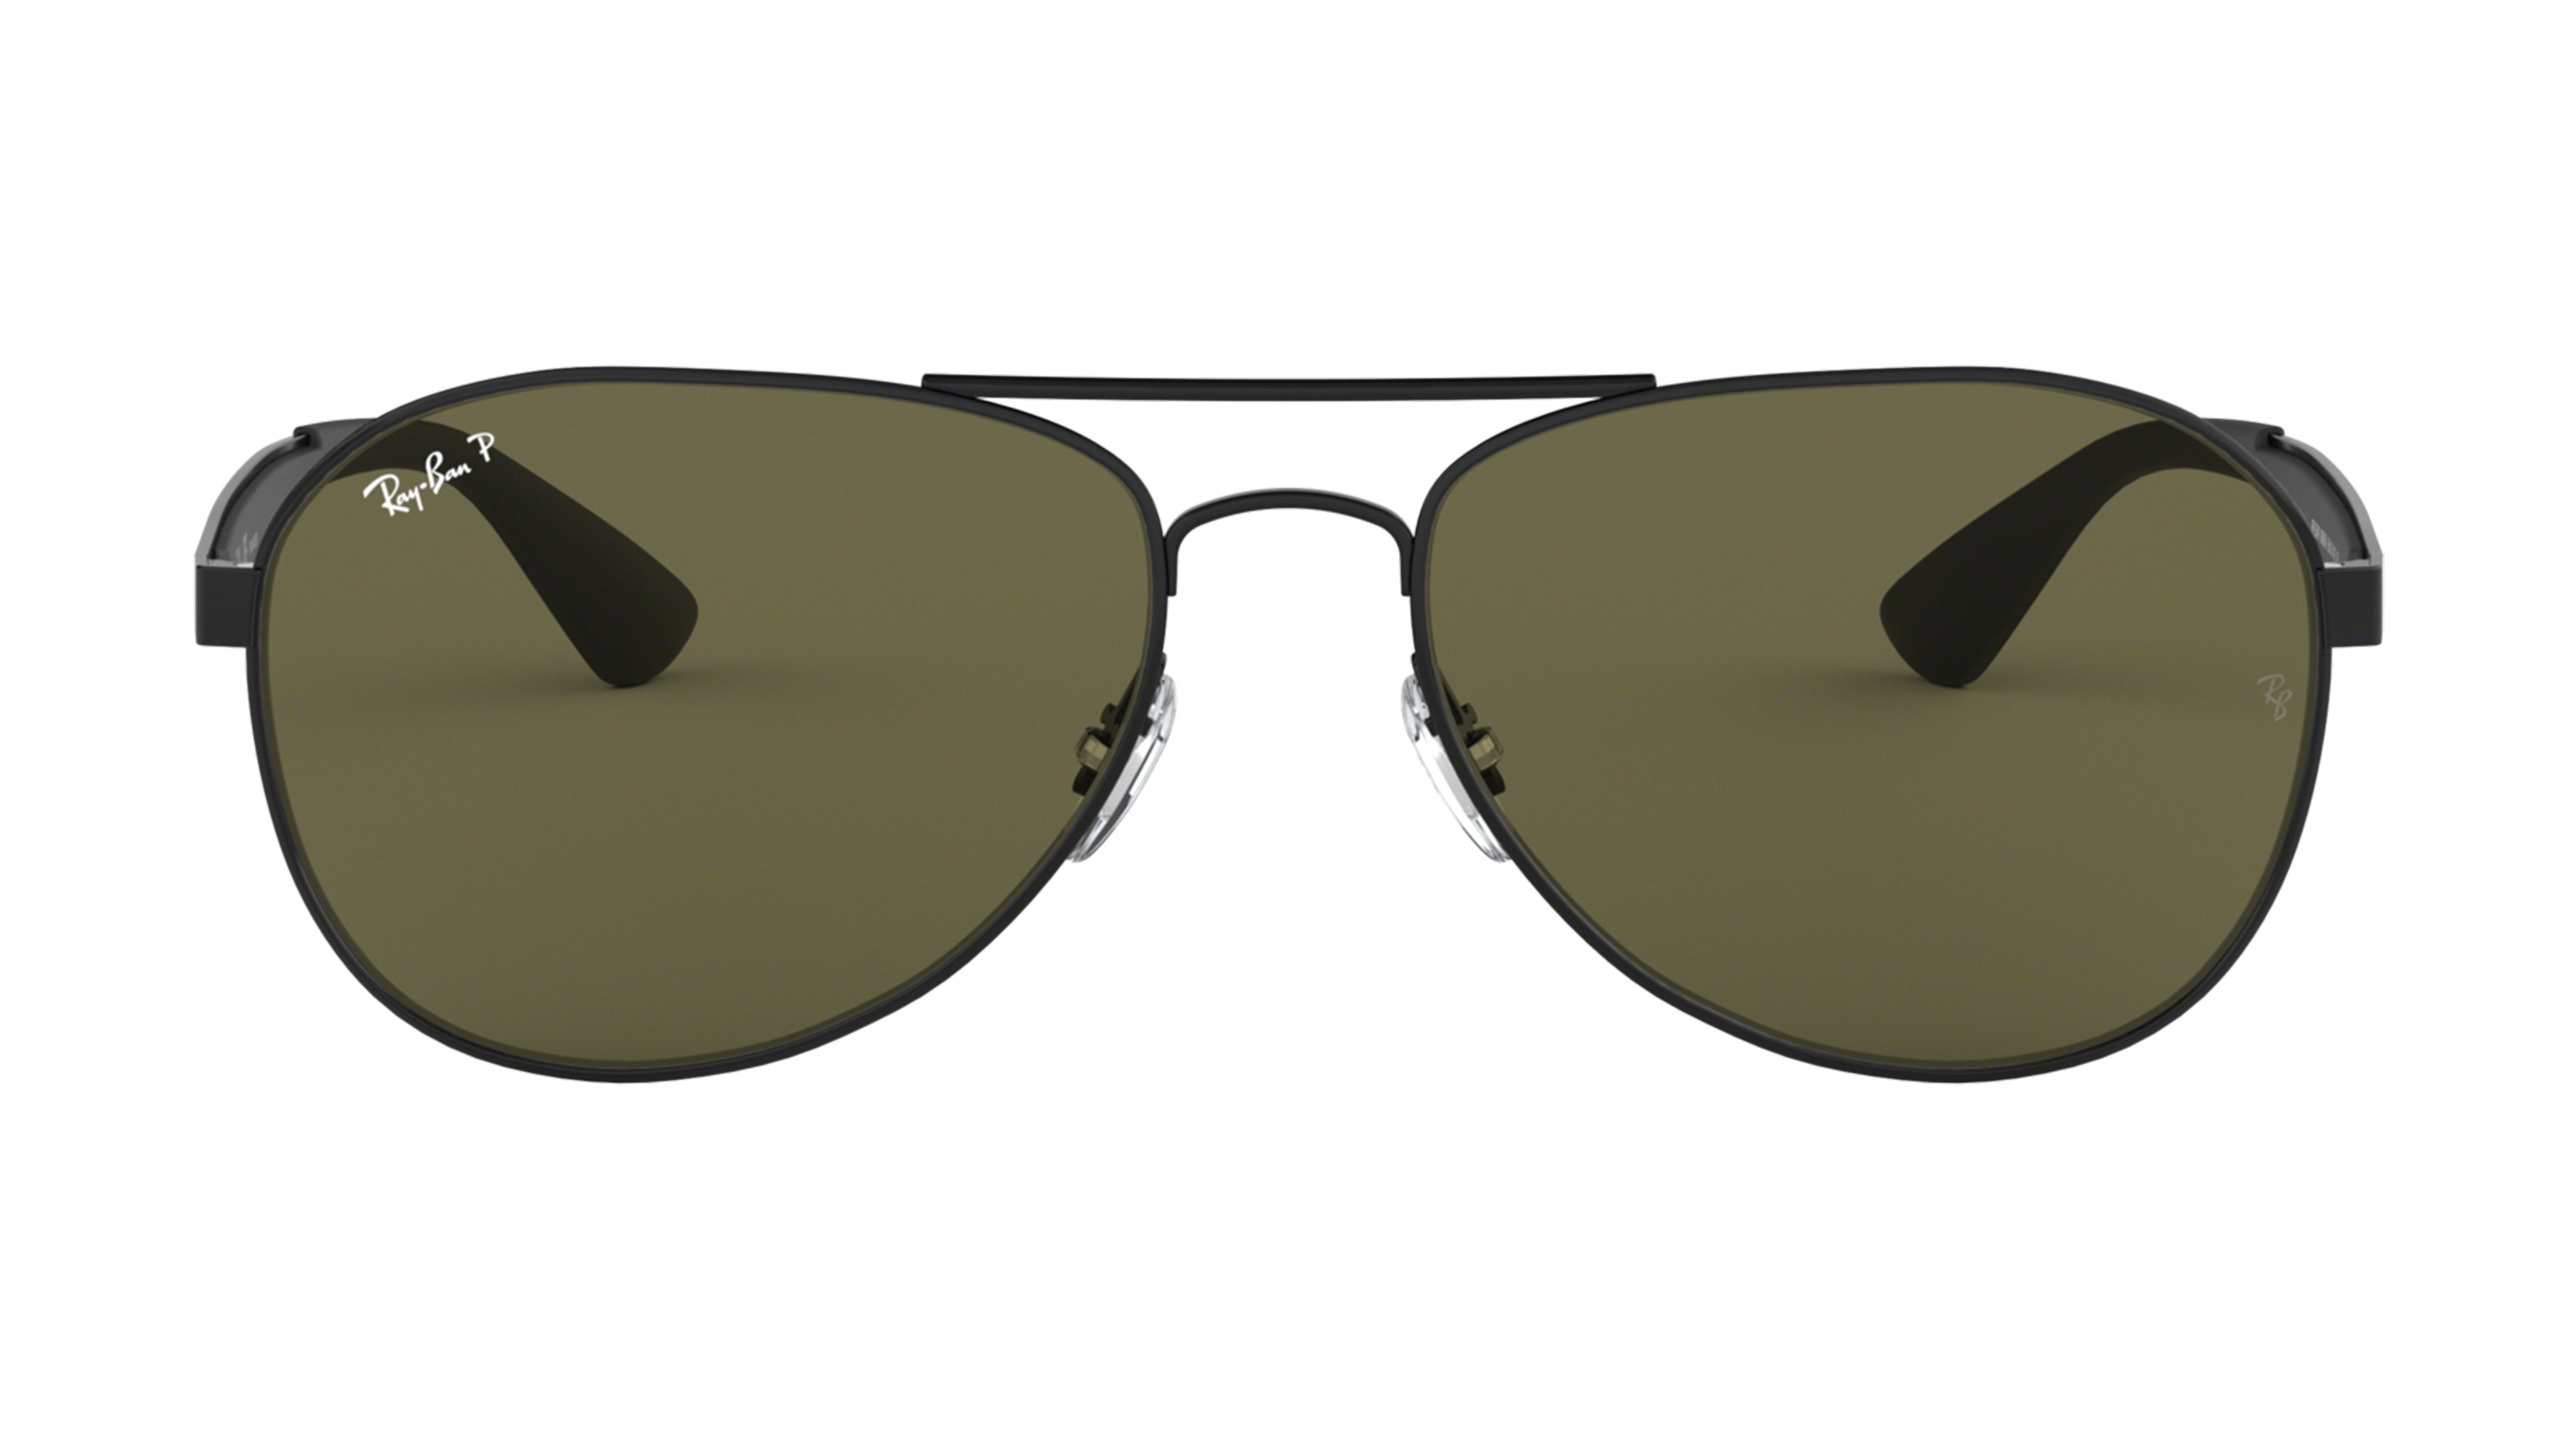 8053672671094-front-Ray-Ban-0RB3549-006-9A